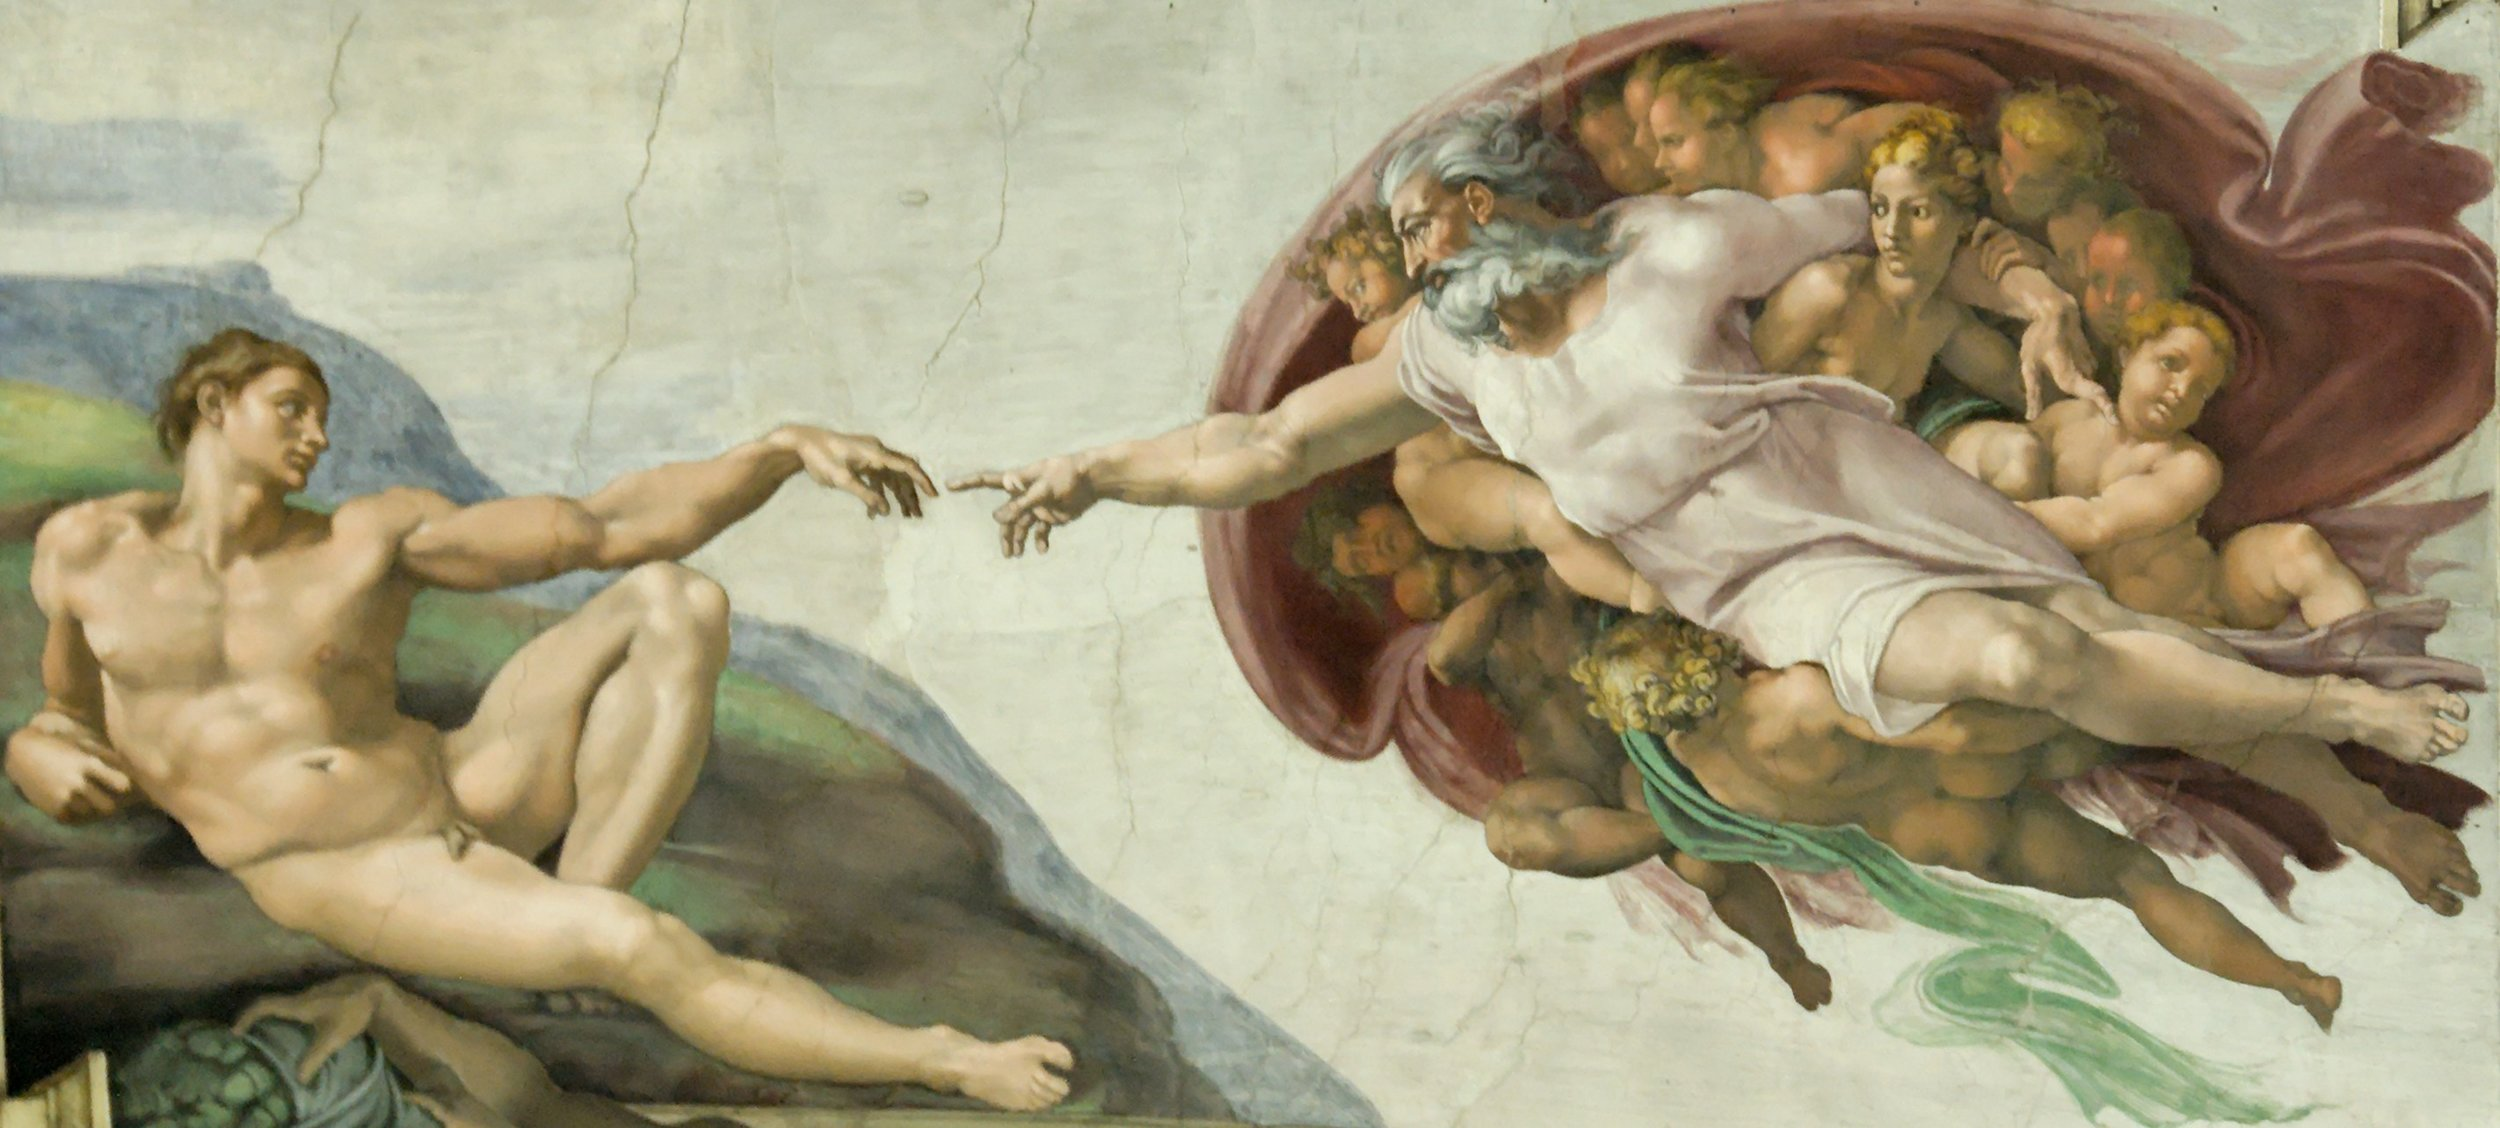 The Creation of Adam by Michelangelo / GOD represents the mind/brain